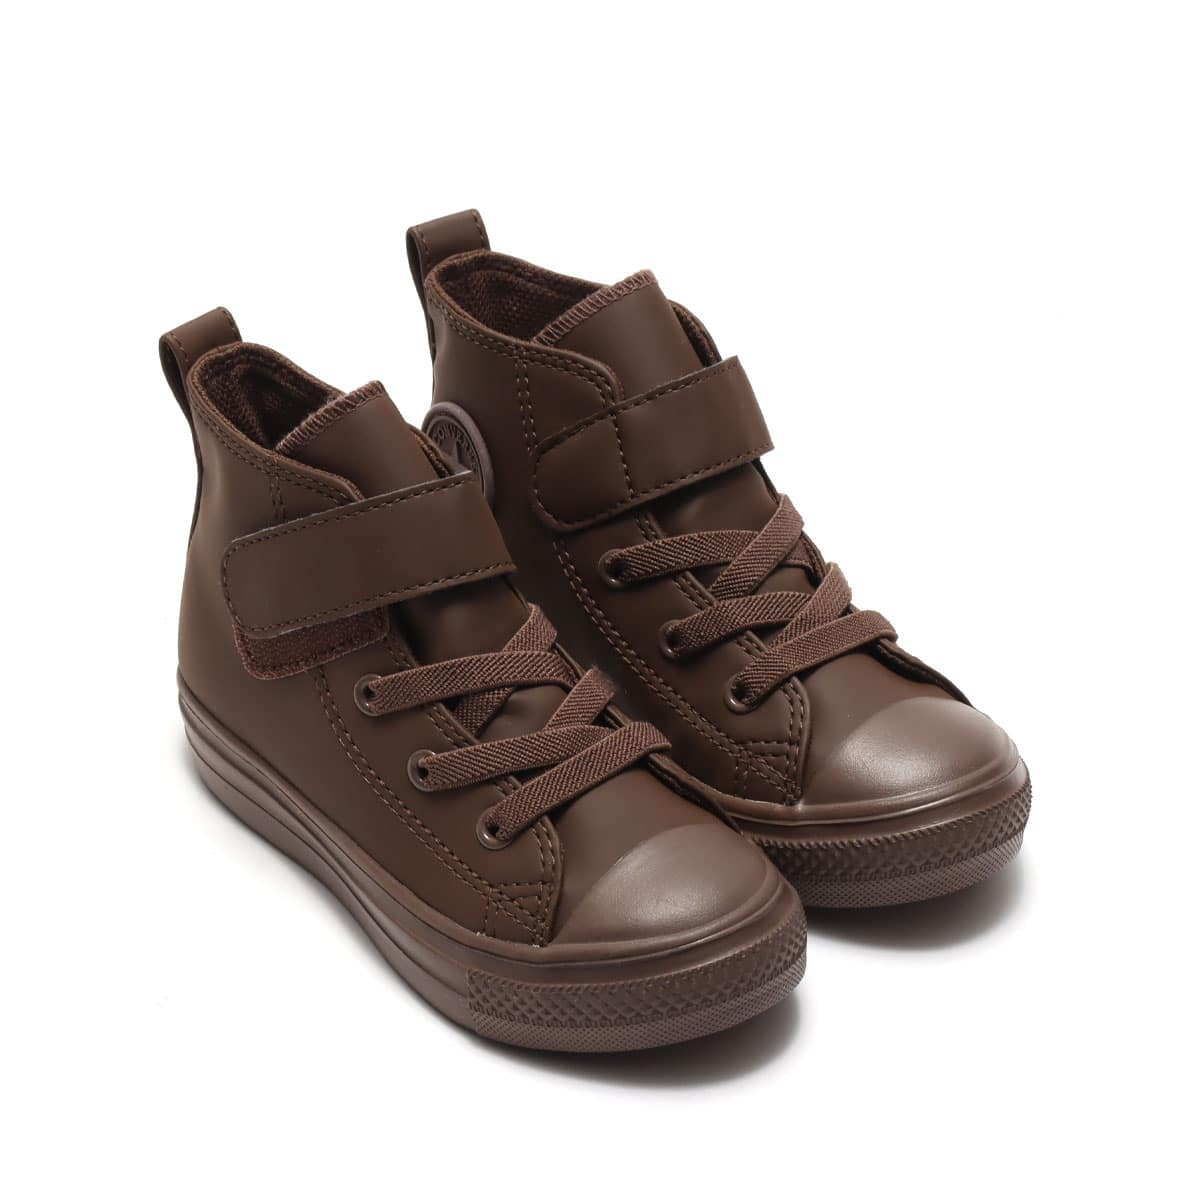 CONVERSE CHILD ALL STAR LIGHT WR V-1 HI BROWN 21SS-I_photo_large